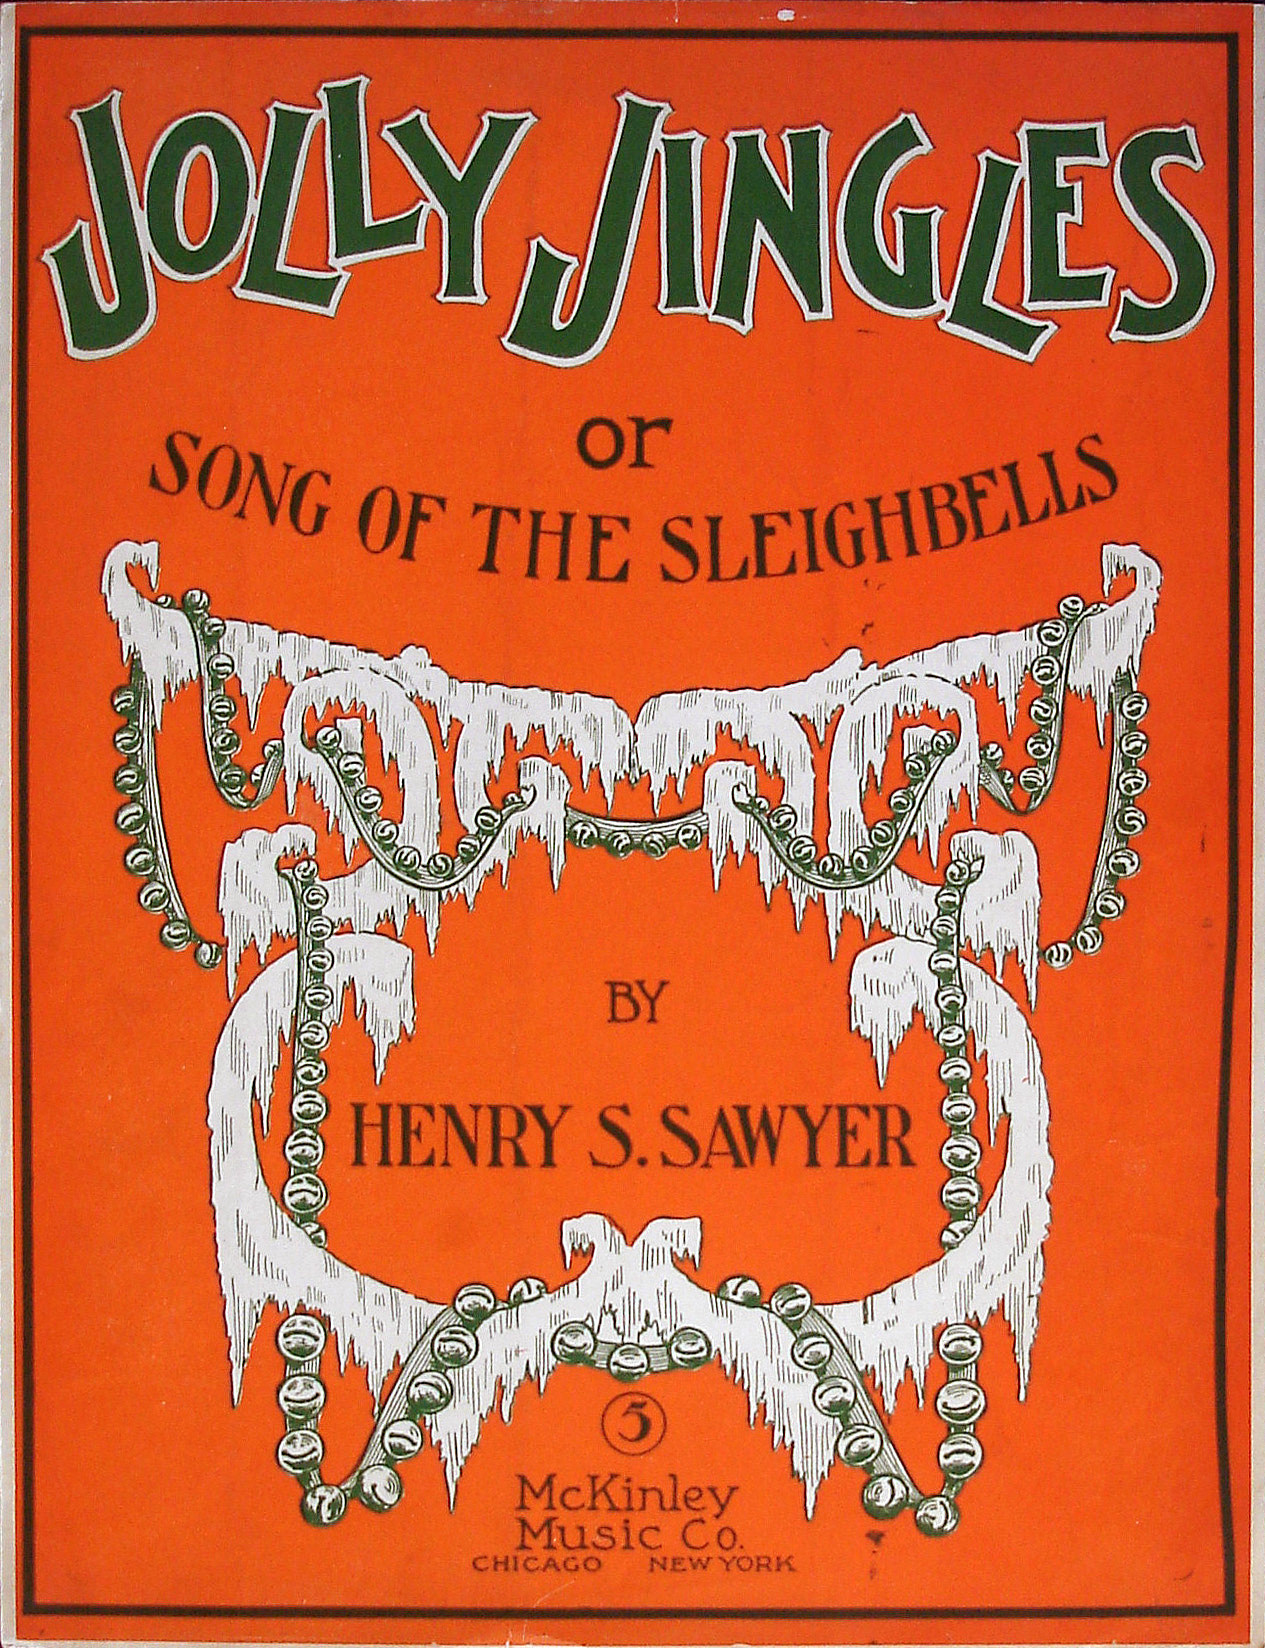 Jolly Jingles or Song of the Sleighbells - Henry S. Sawyer - Large Format